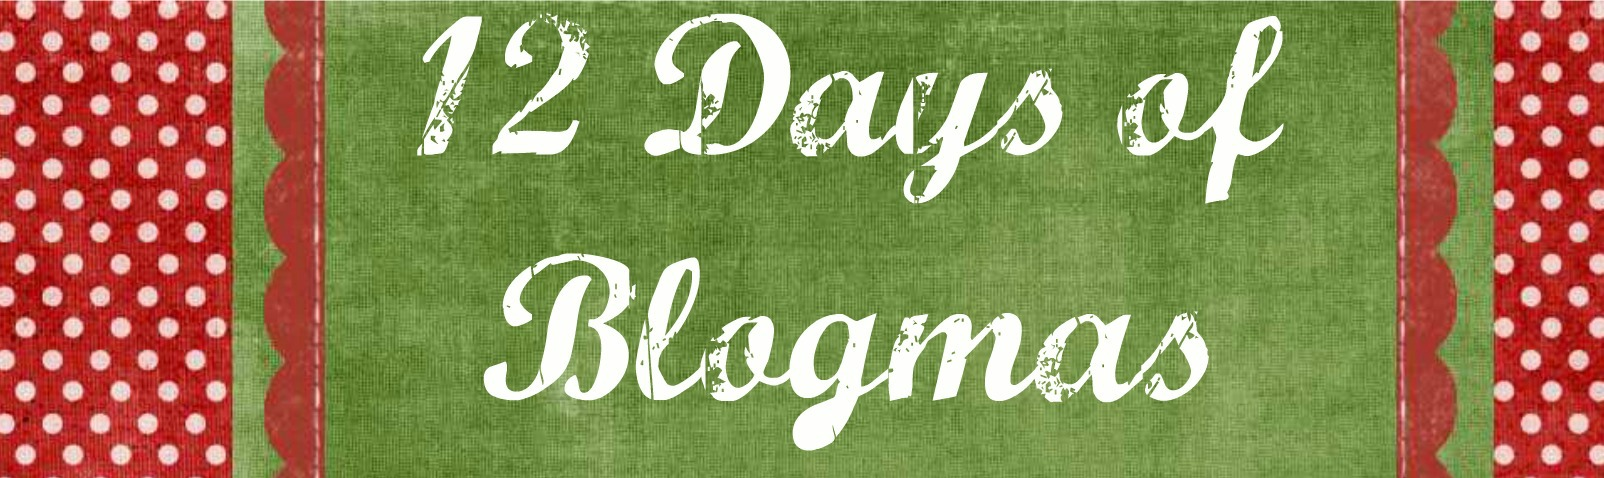 12 Days of Christmas blog series